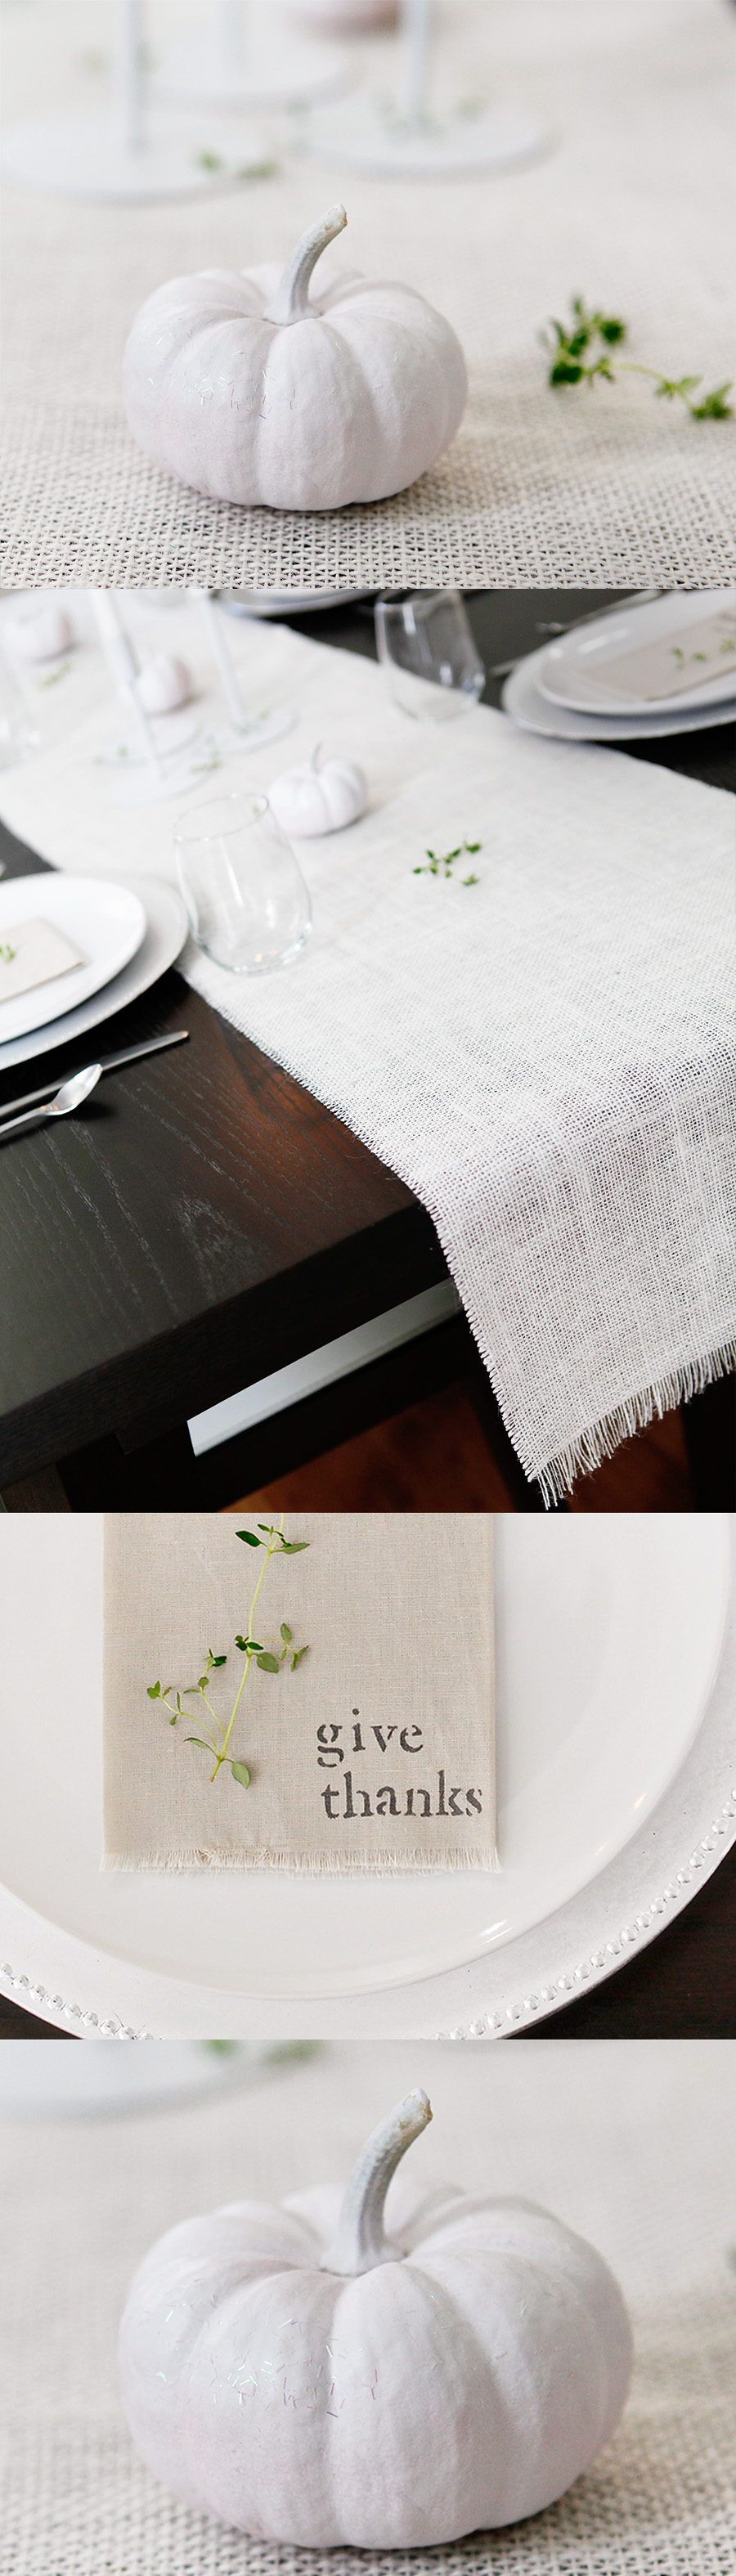 thanksgiving diy table runner napkins white pumpkins decor modern white brown